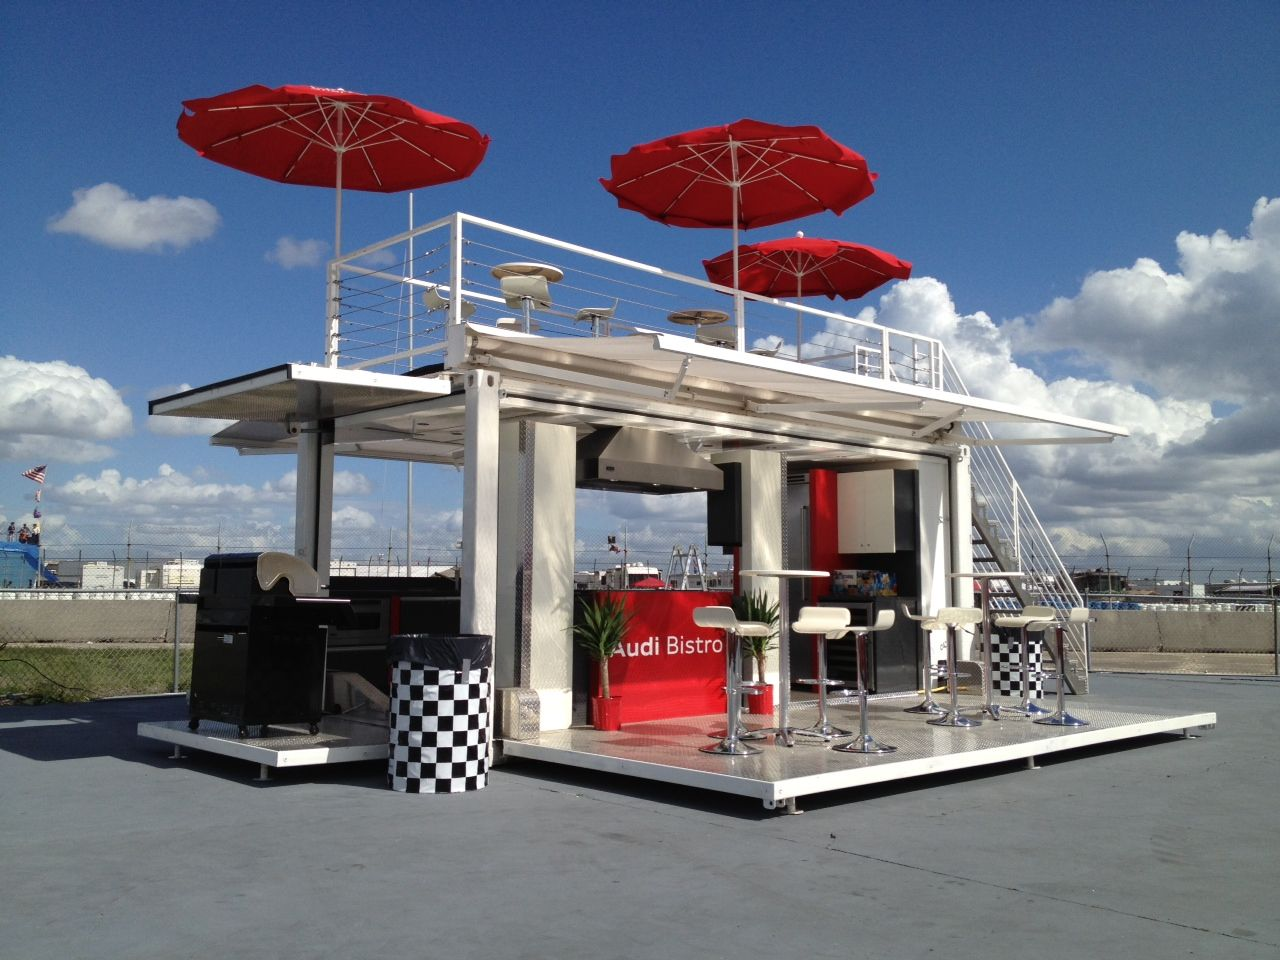 Audi Bistro With Vip Lounge On The Top Container Restaurant Container Coffee Shop Shipping Container